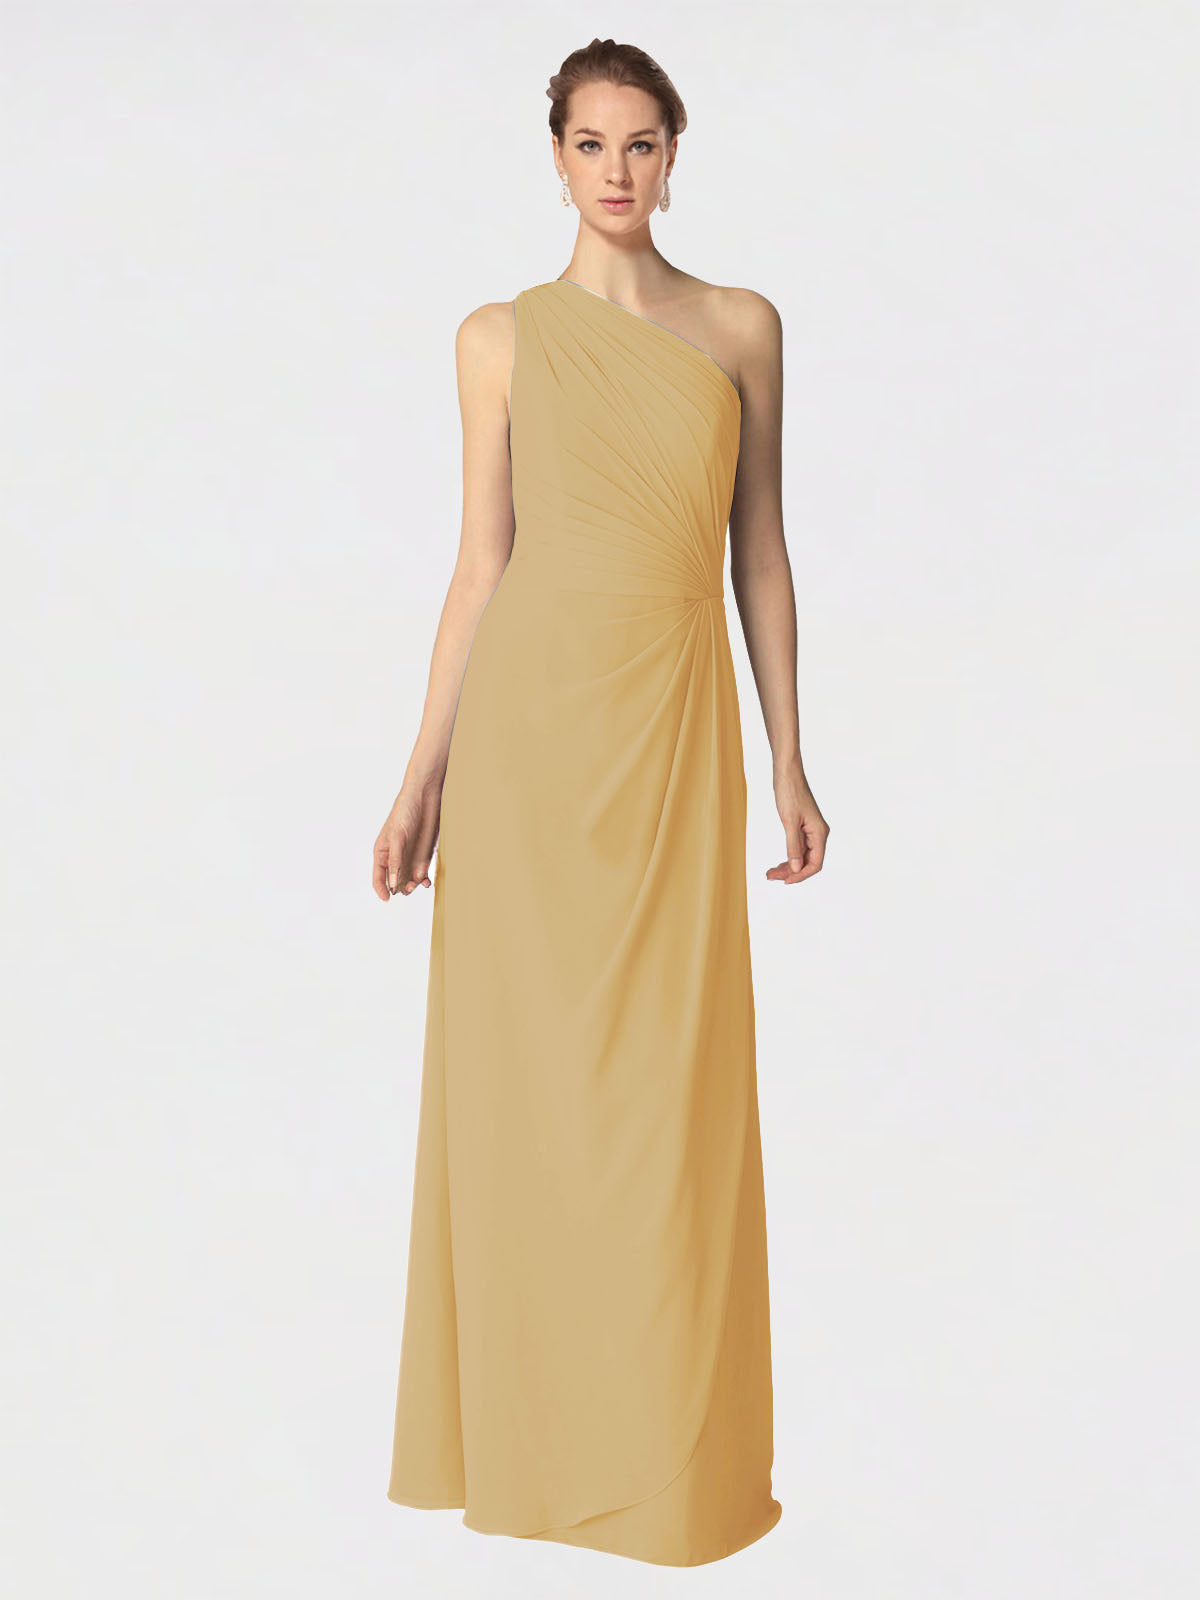 Long A-Line One Shoulder Sleeveless Gold Chiffon Bridesmaid Dress Aurora